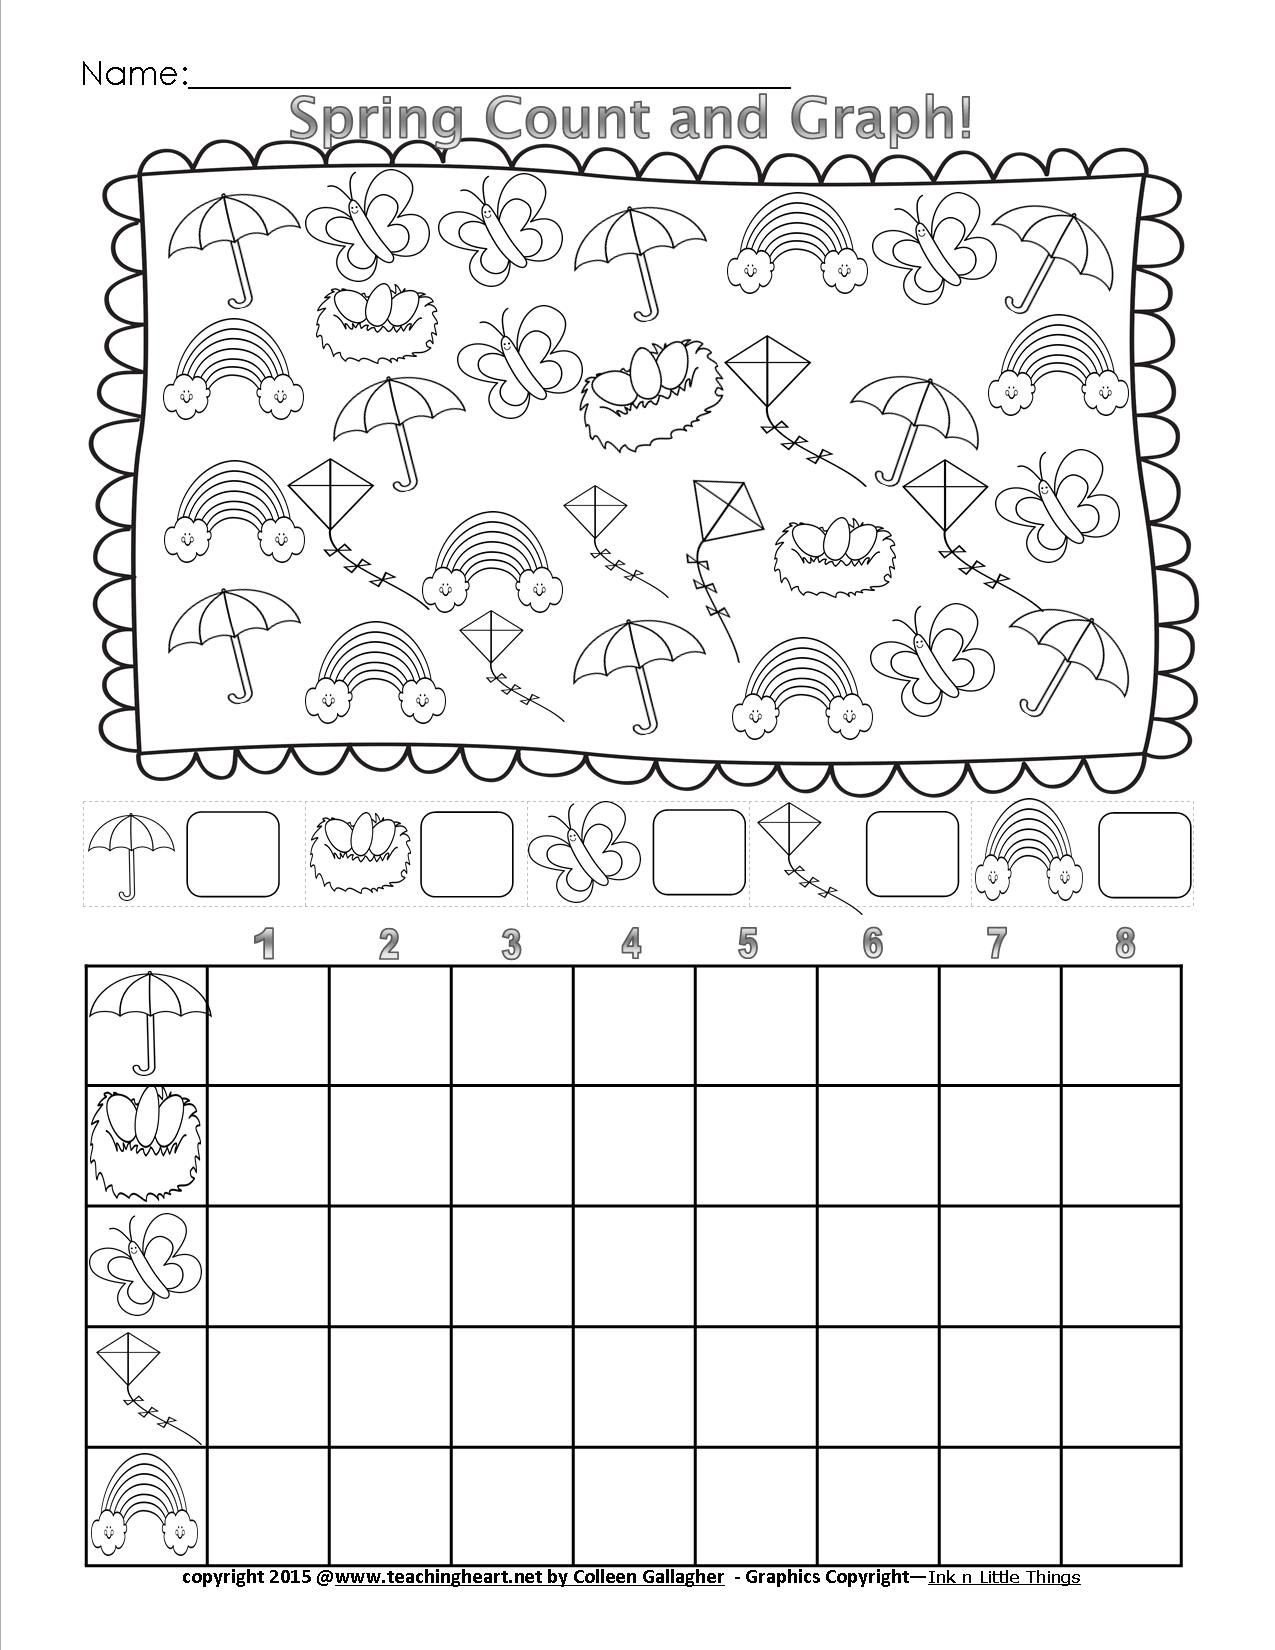 Graphing Worksheets Kindergarten Spring Count and Graph Free Teaching Heart Blog